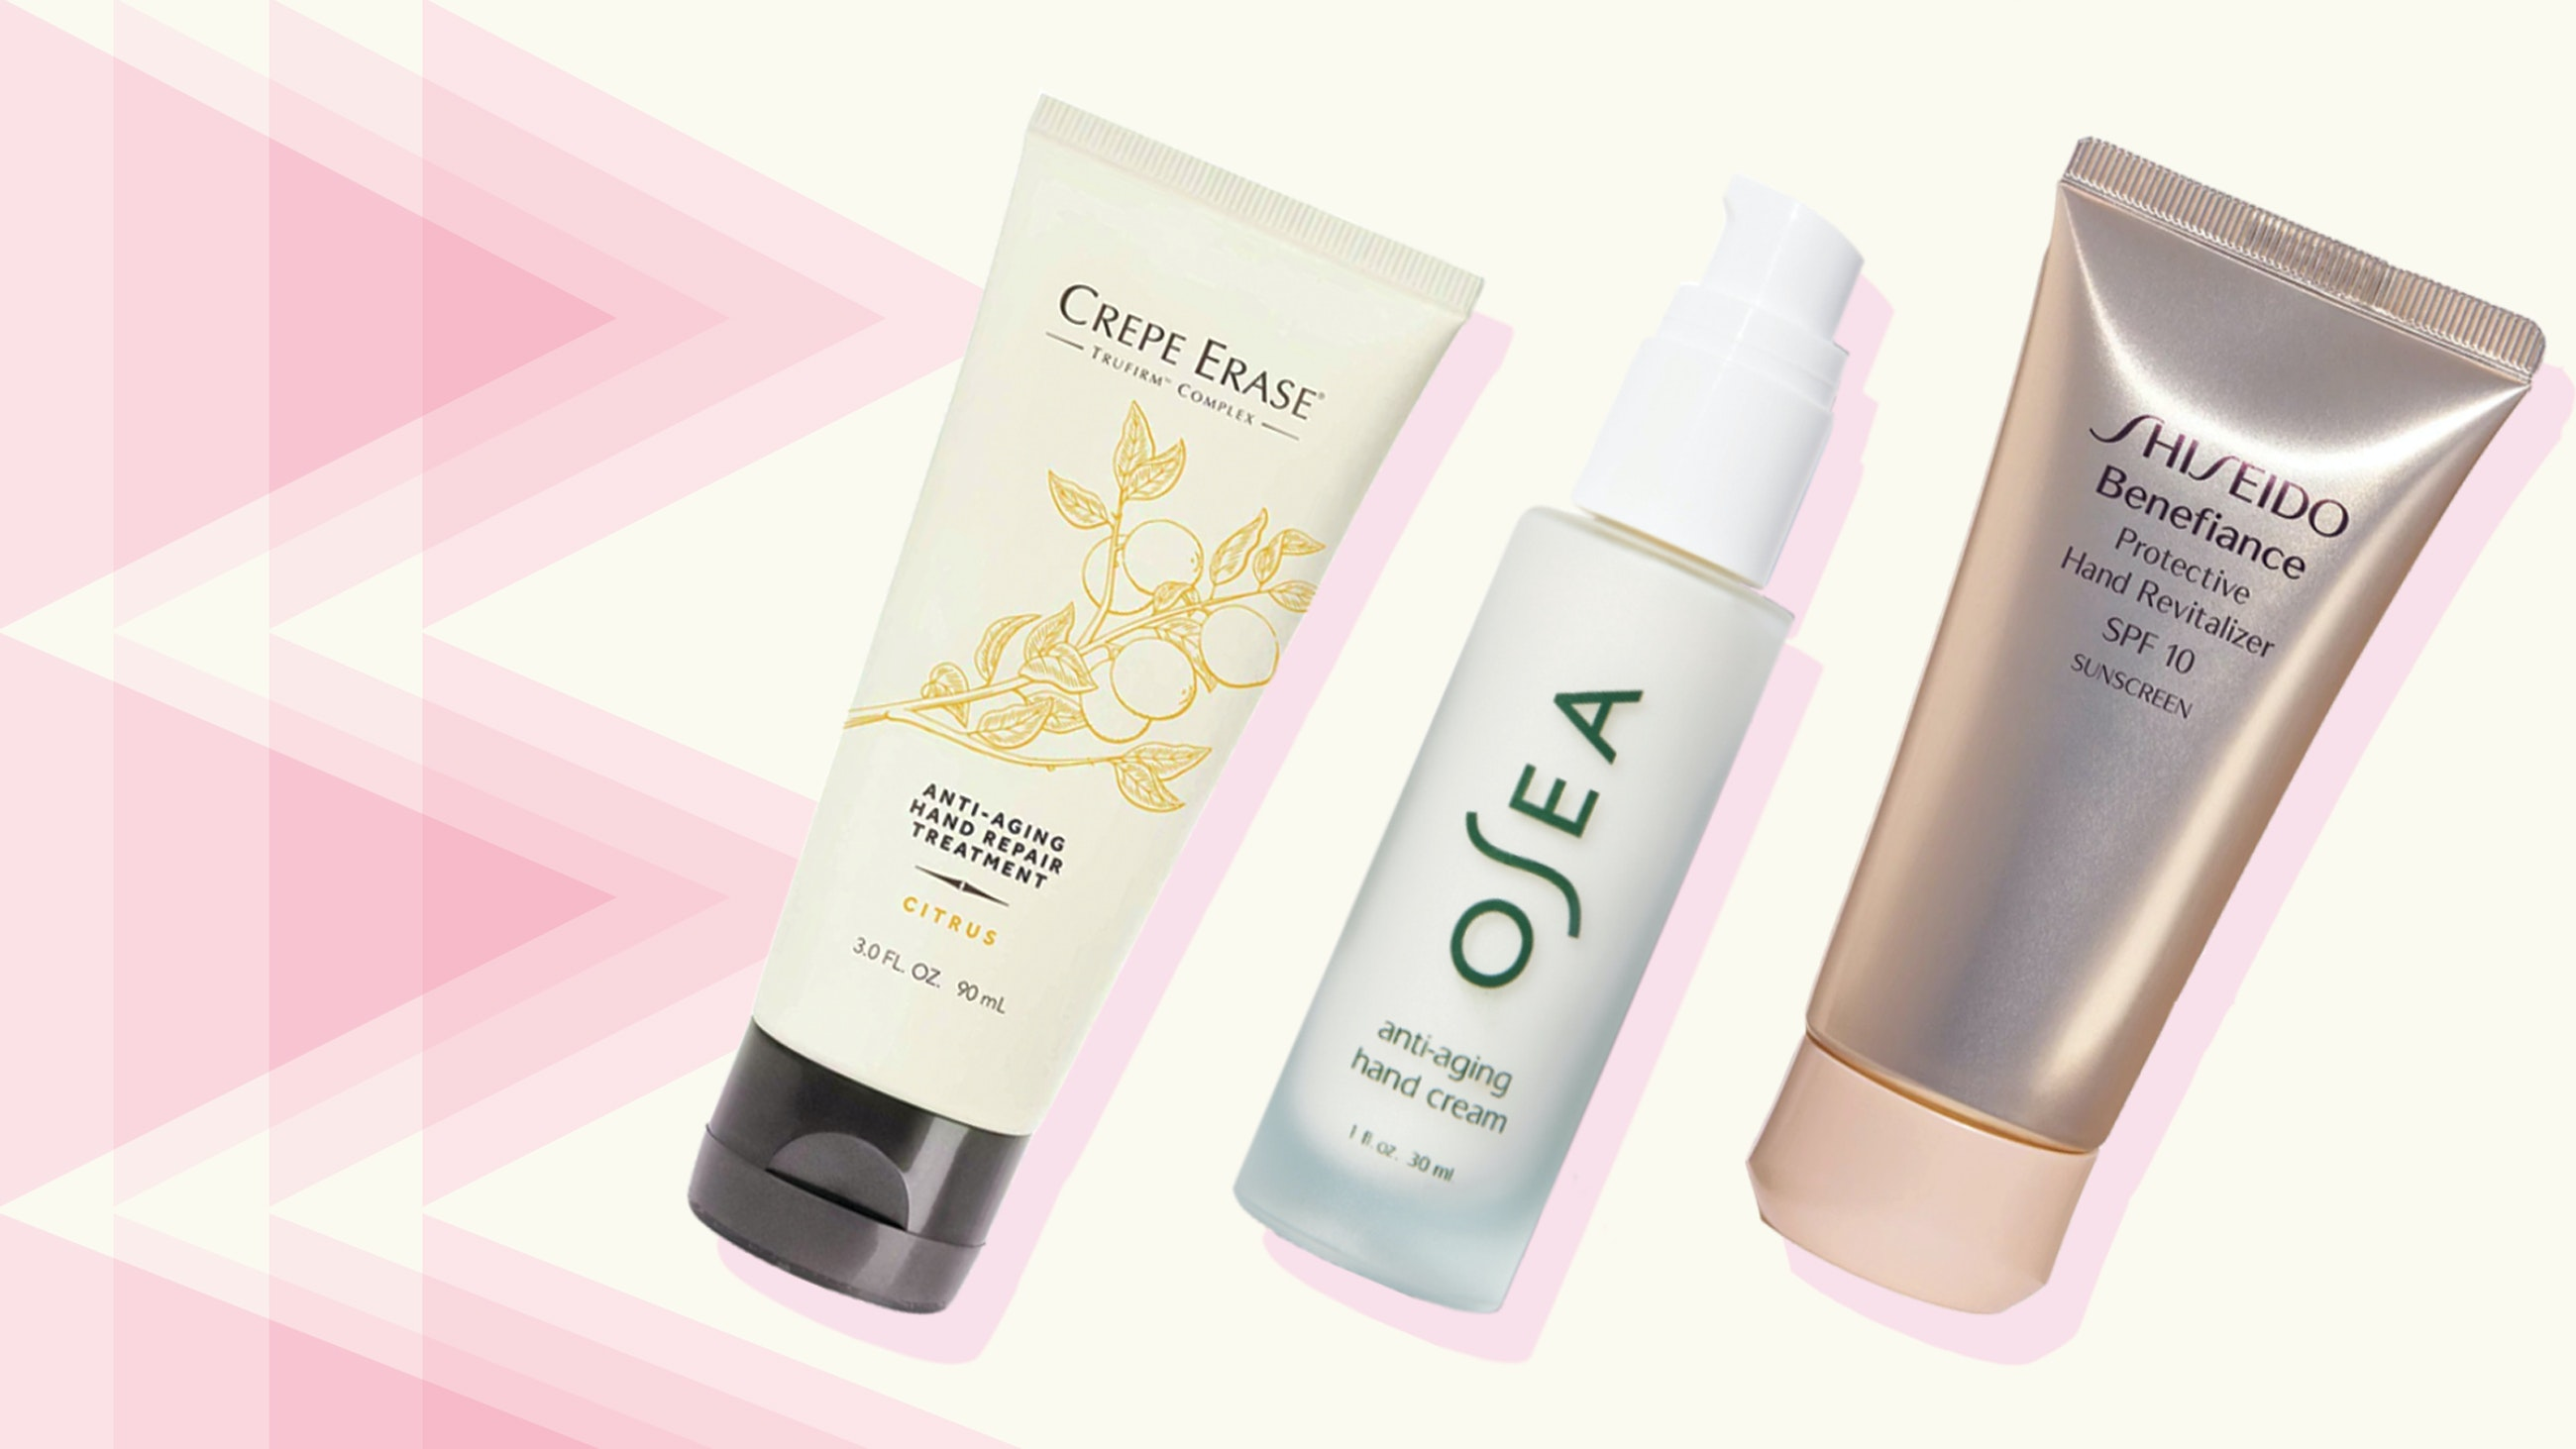 Spotlyte7: Anti-Aging Hand Creams to Help Brighten, Firm, and Smooth